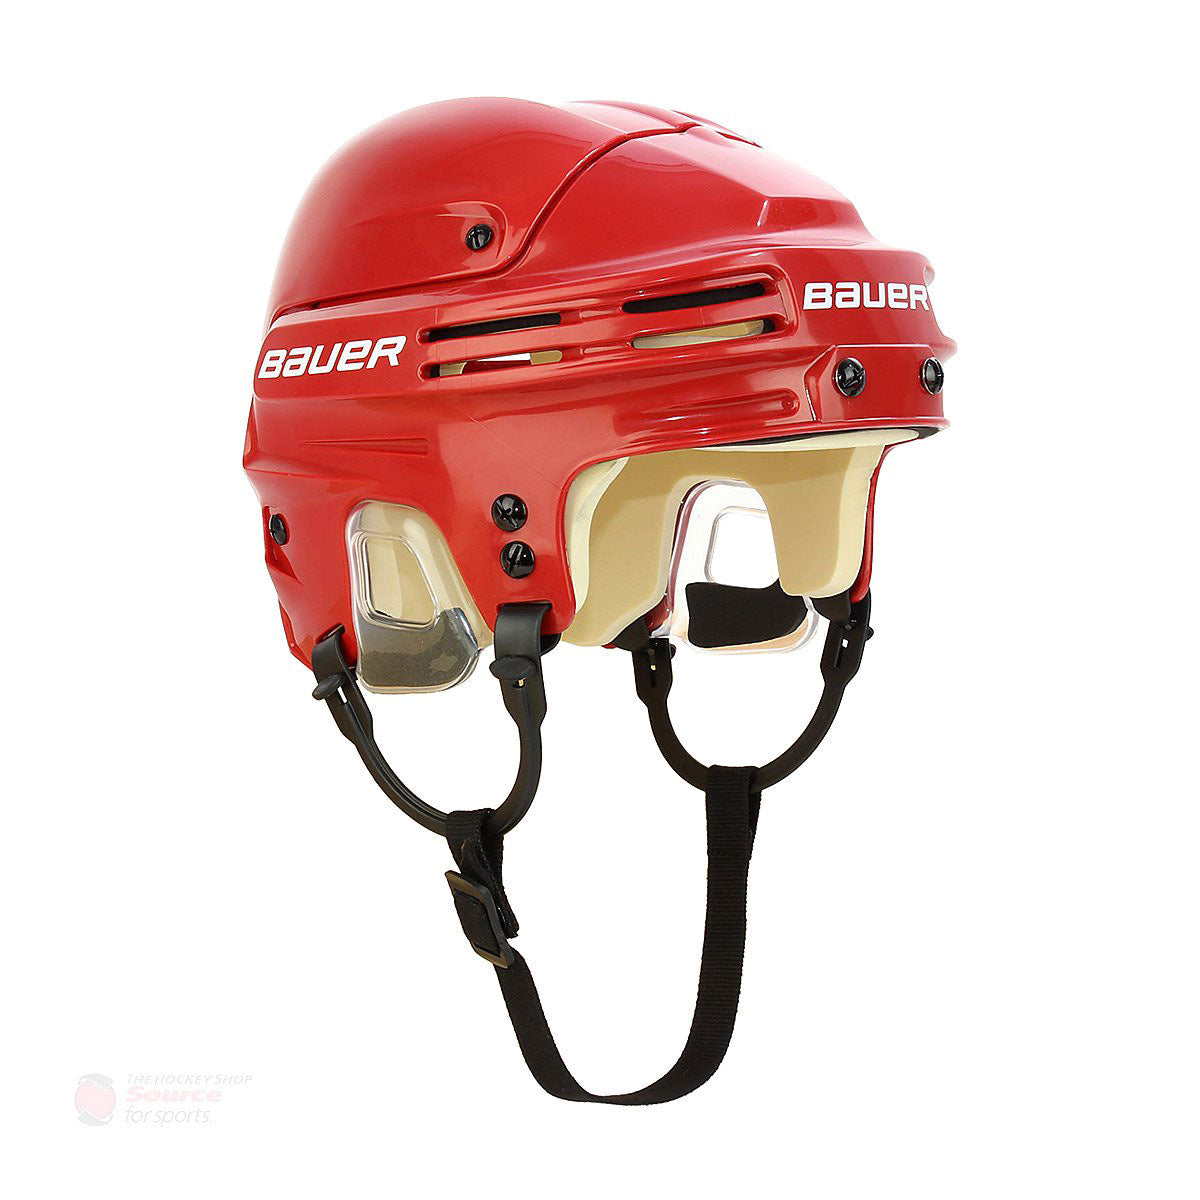 Bauer 4500 Hockey Helmet